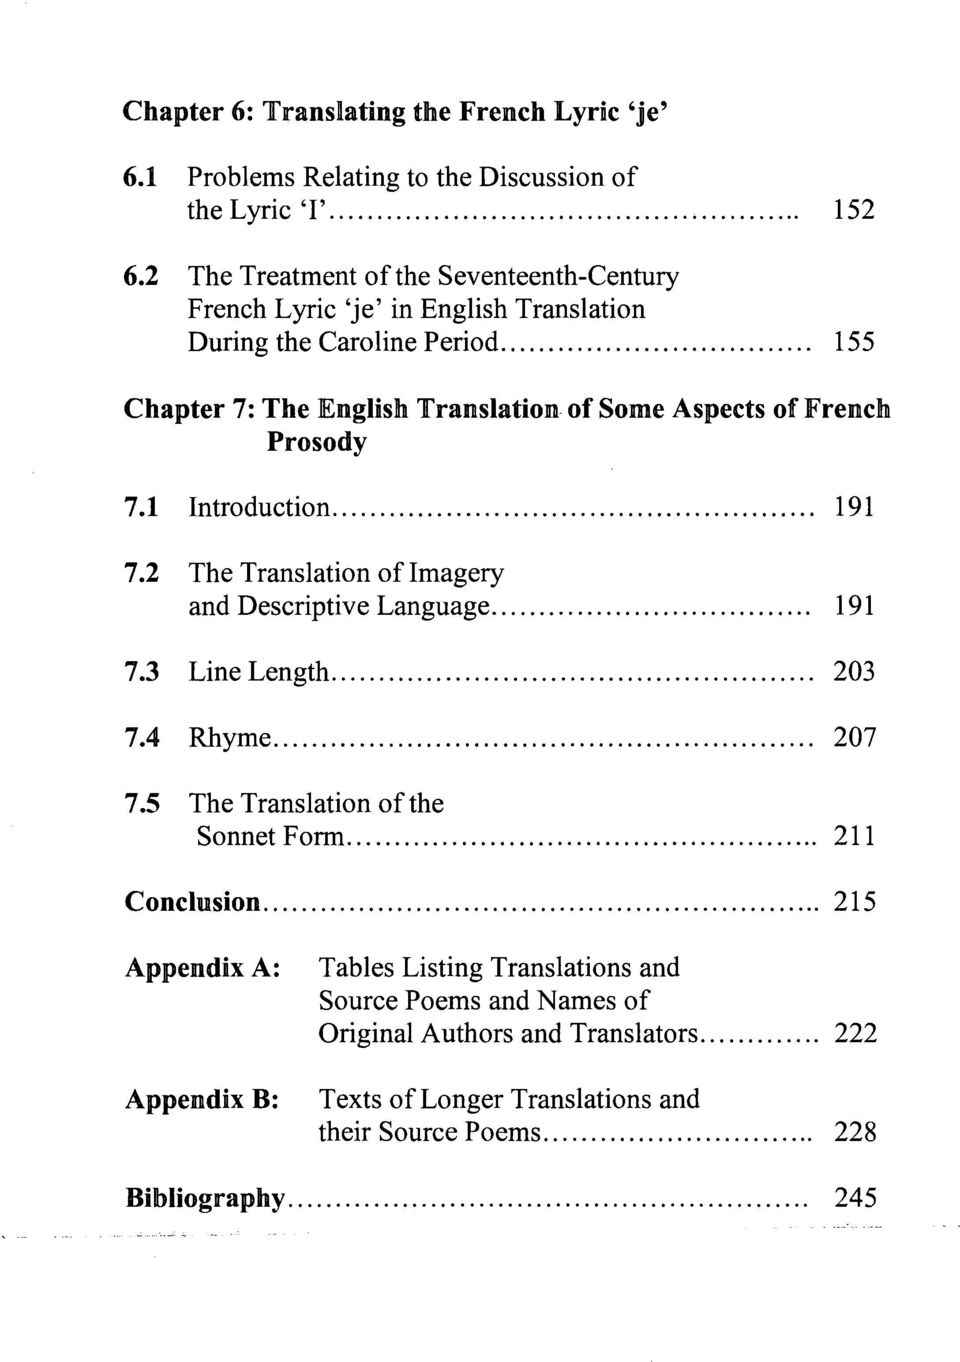 1 Introduction... 191 7.2 The Translation of Imagery and Descriptive Language............. 191 7.3 Line Length... 203 7.4 Rhyme... 207 7.5 The Translation of the Sonnet Form... 211 Conclusion.